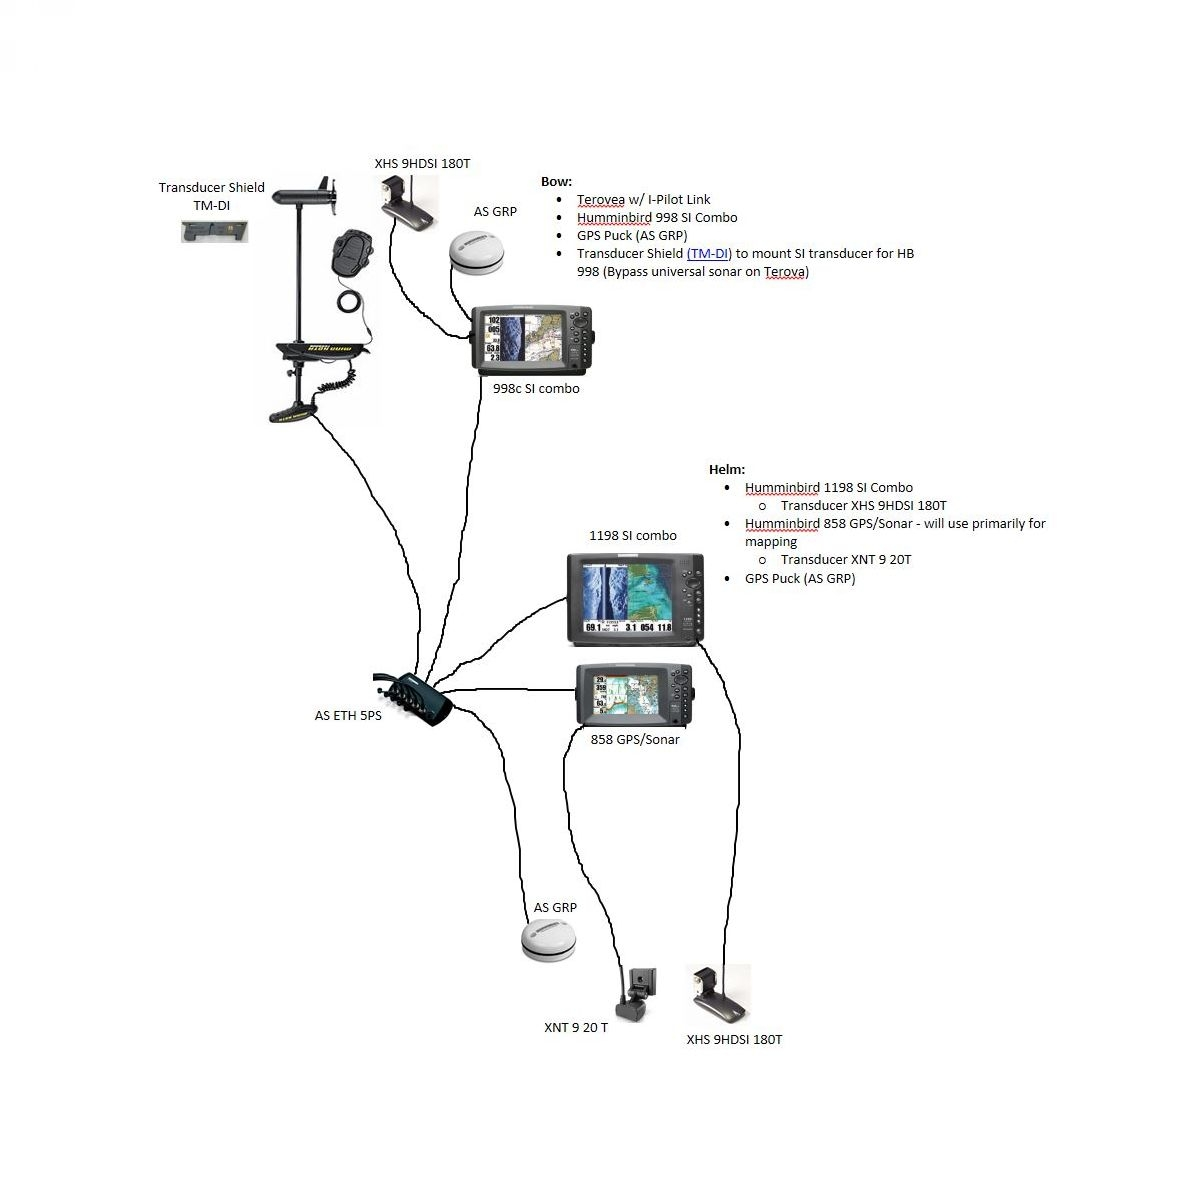 Hummingbird Nmea 0183 Wiring Diagram Just Another Raymarine Diagrams Humminbird Rh 35 Shareplm De Connecting Devices Extension Cable